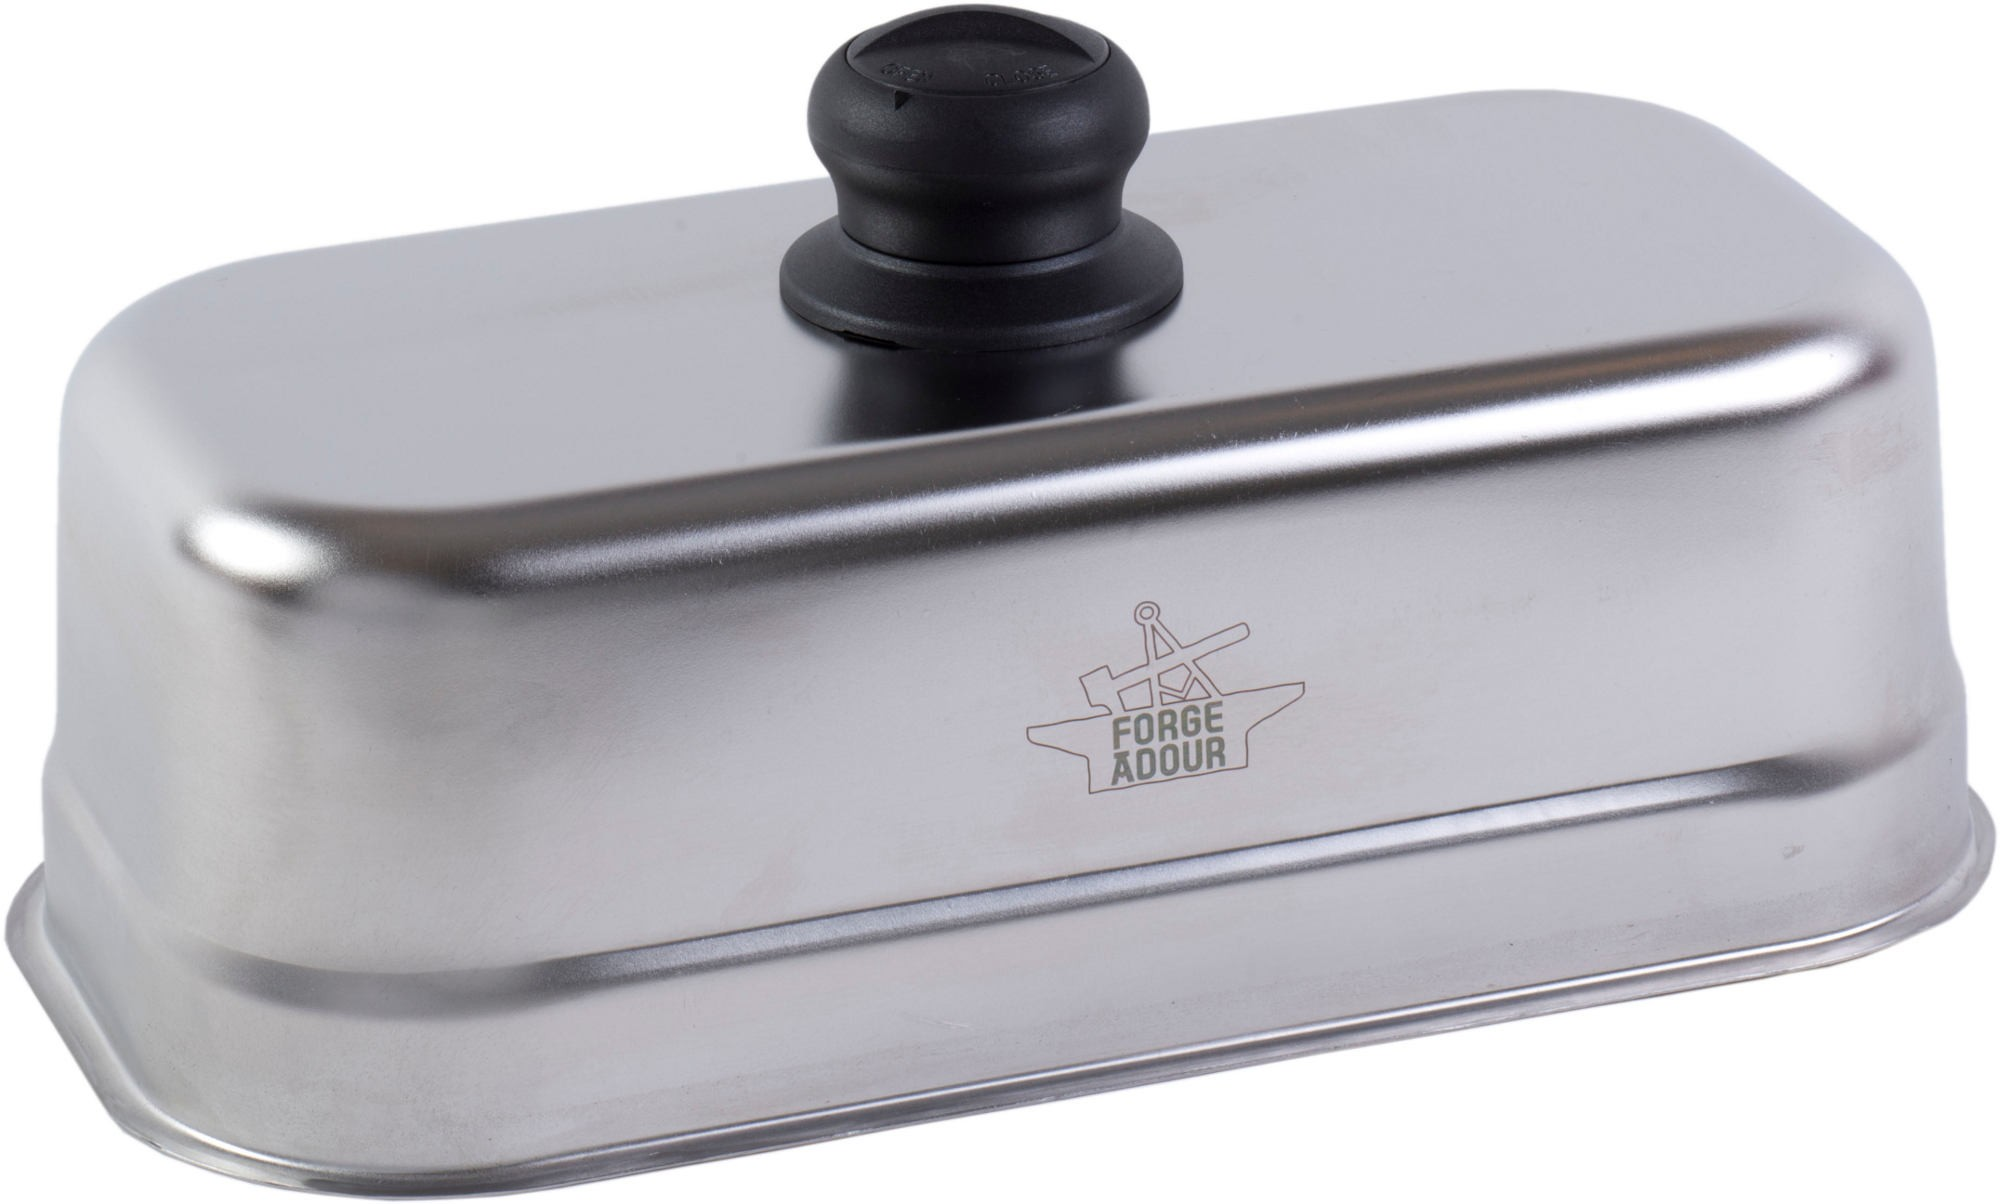 FORGE ADOUR - CUISEUR INOX RECTANG